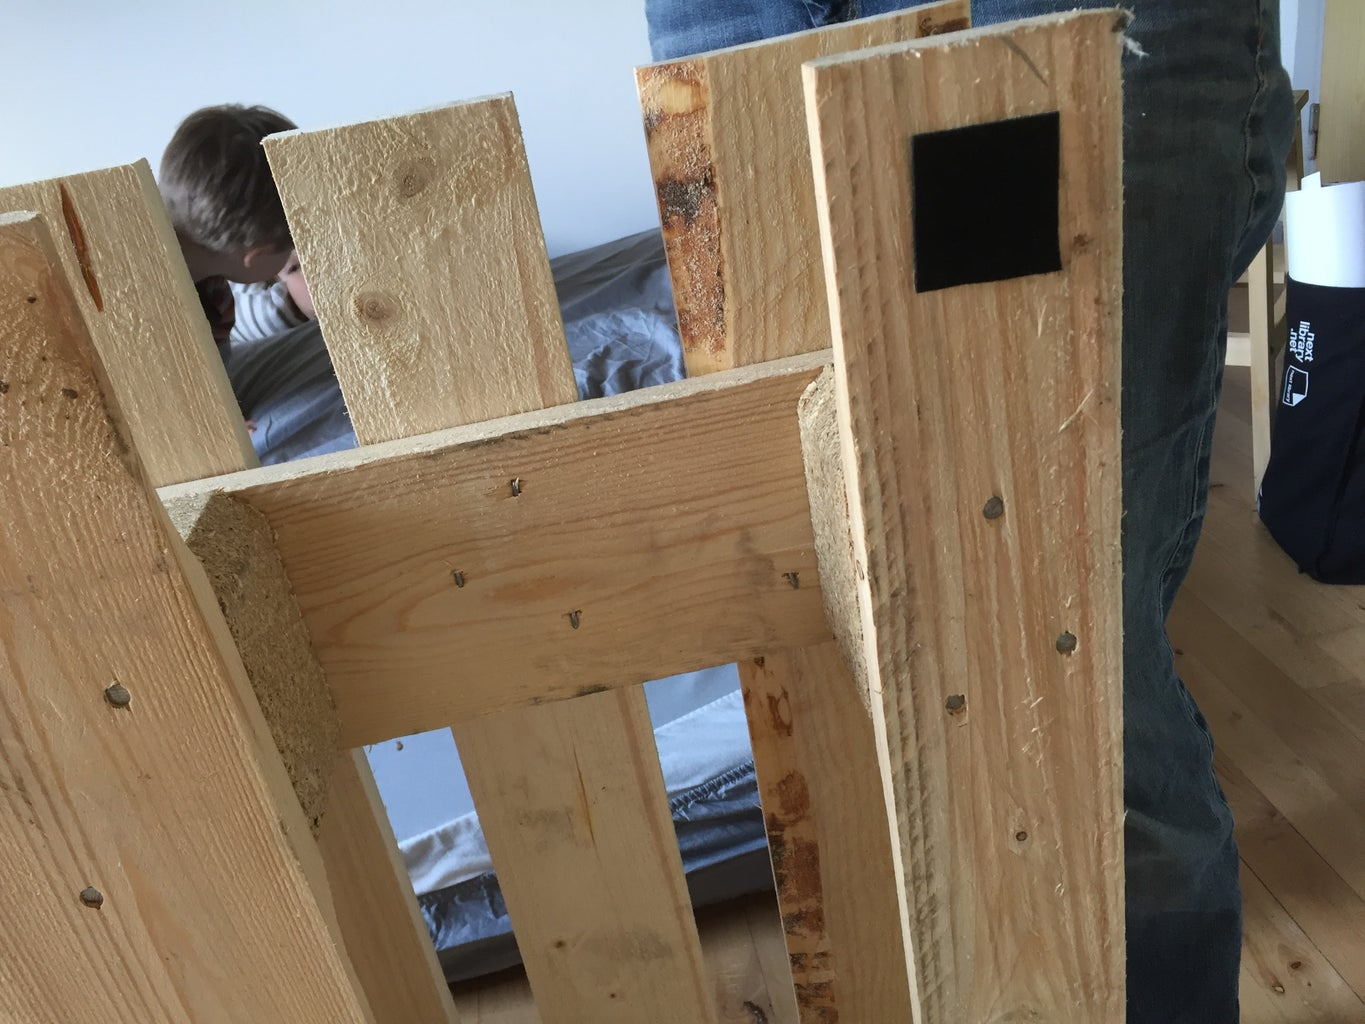 Put Rubber or Felt Pads on the Bottom of the Bed Pallets